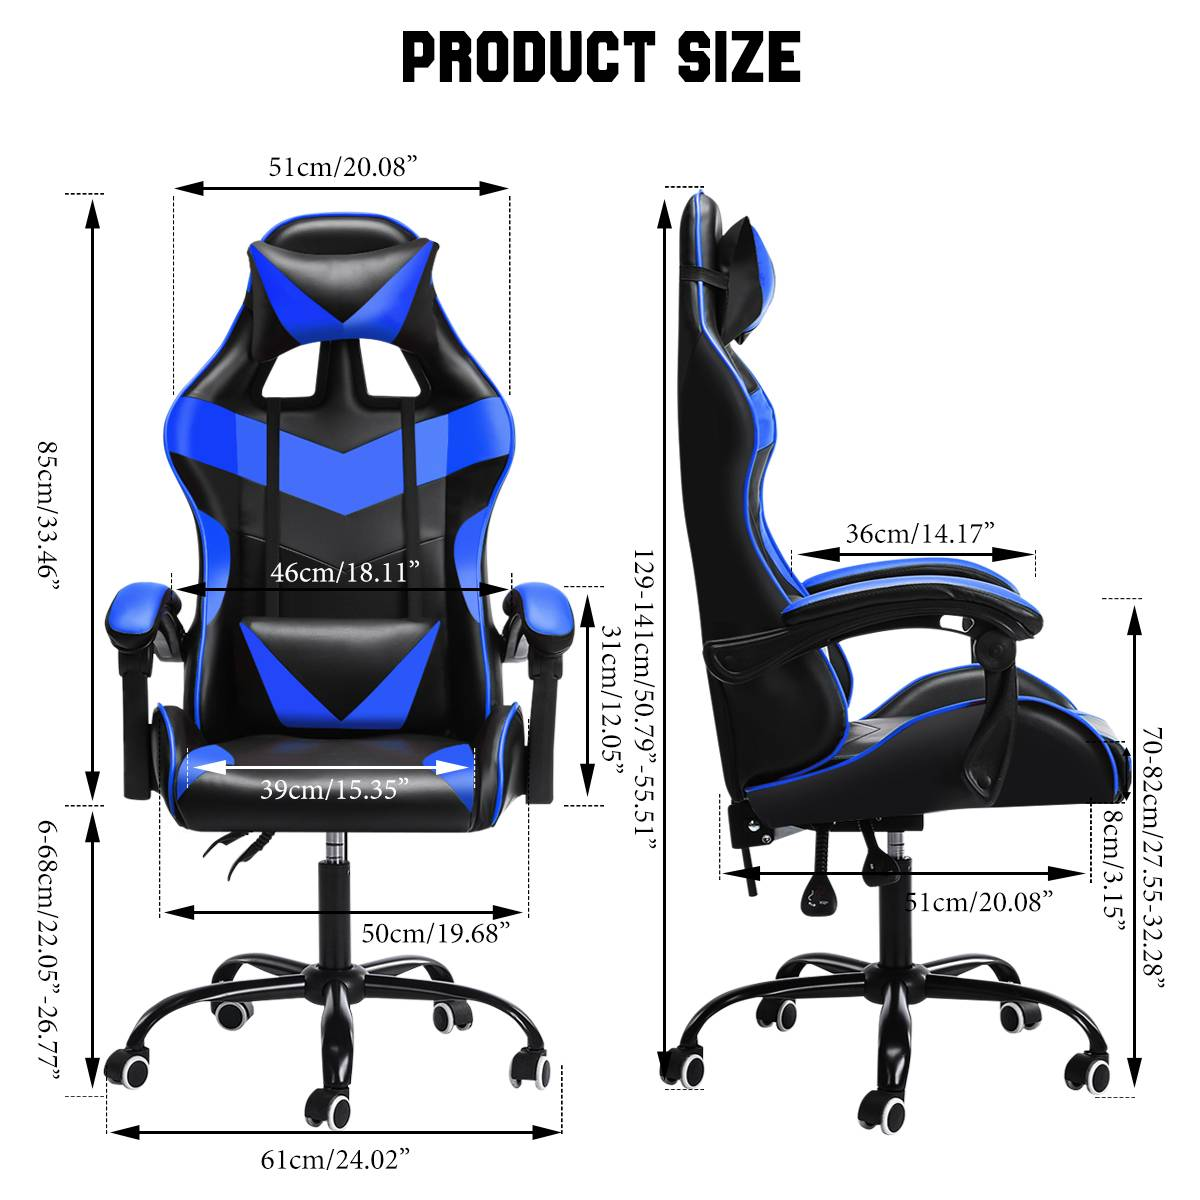 H01e773f68ec842bcbf2f92919f2ffe4aT - Office Gaming Chair with Footrest Ergonomic Office Chairs Adjustable Swivel Leather High Back Computer Desk Chair with Headrest